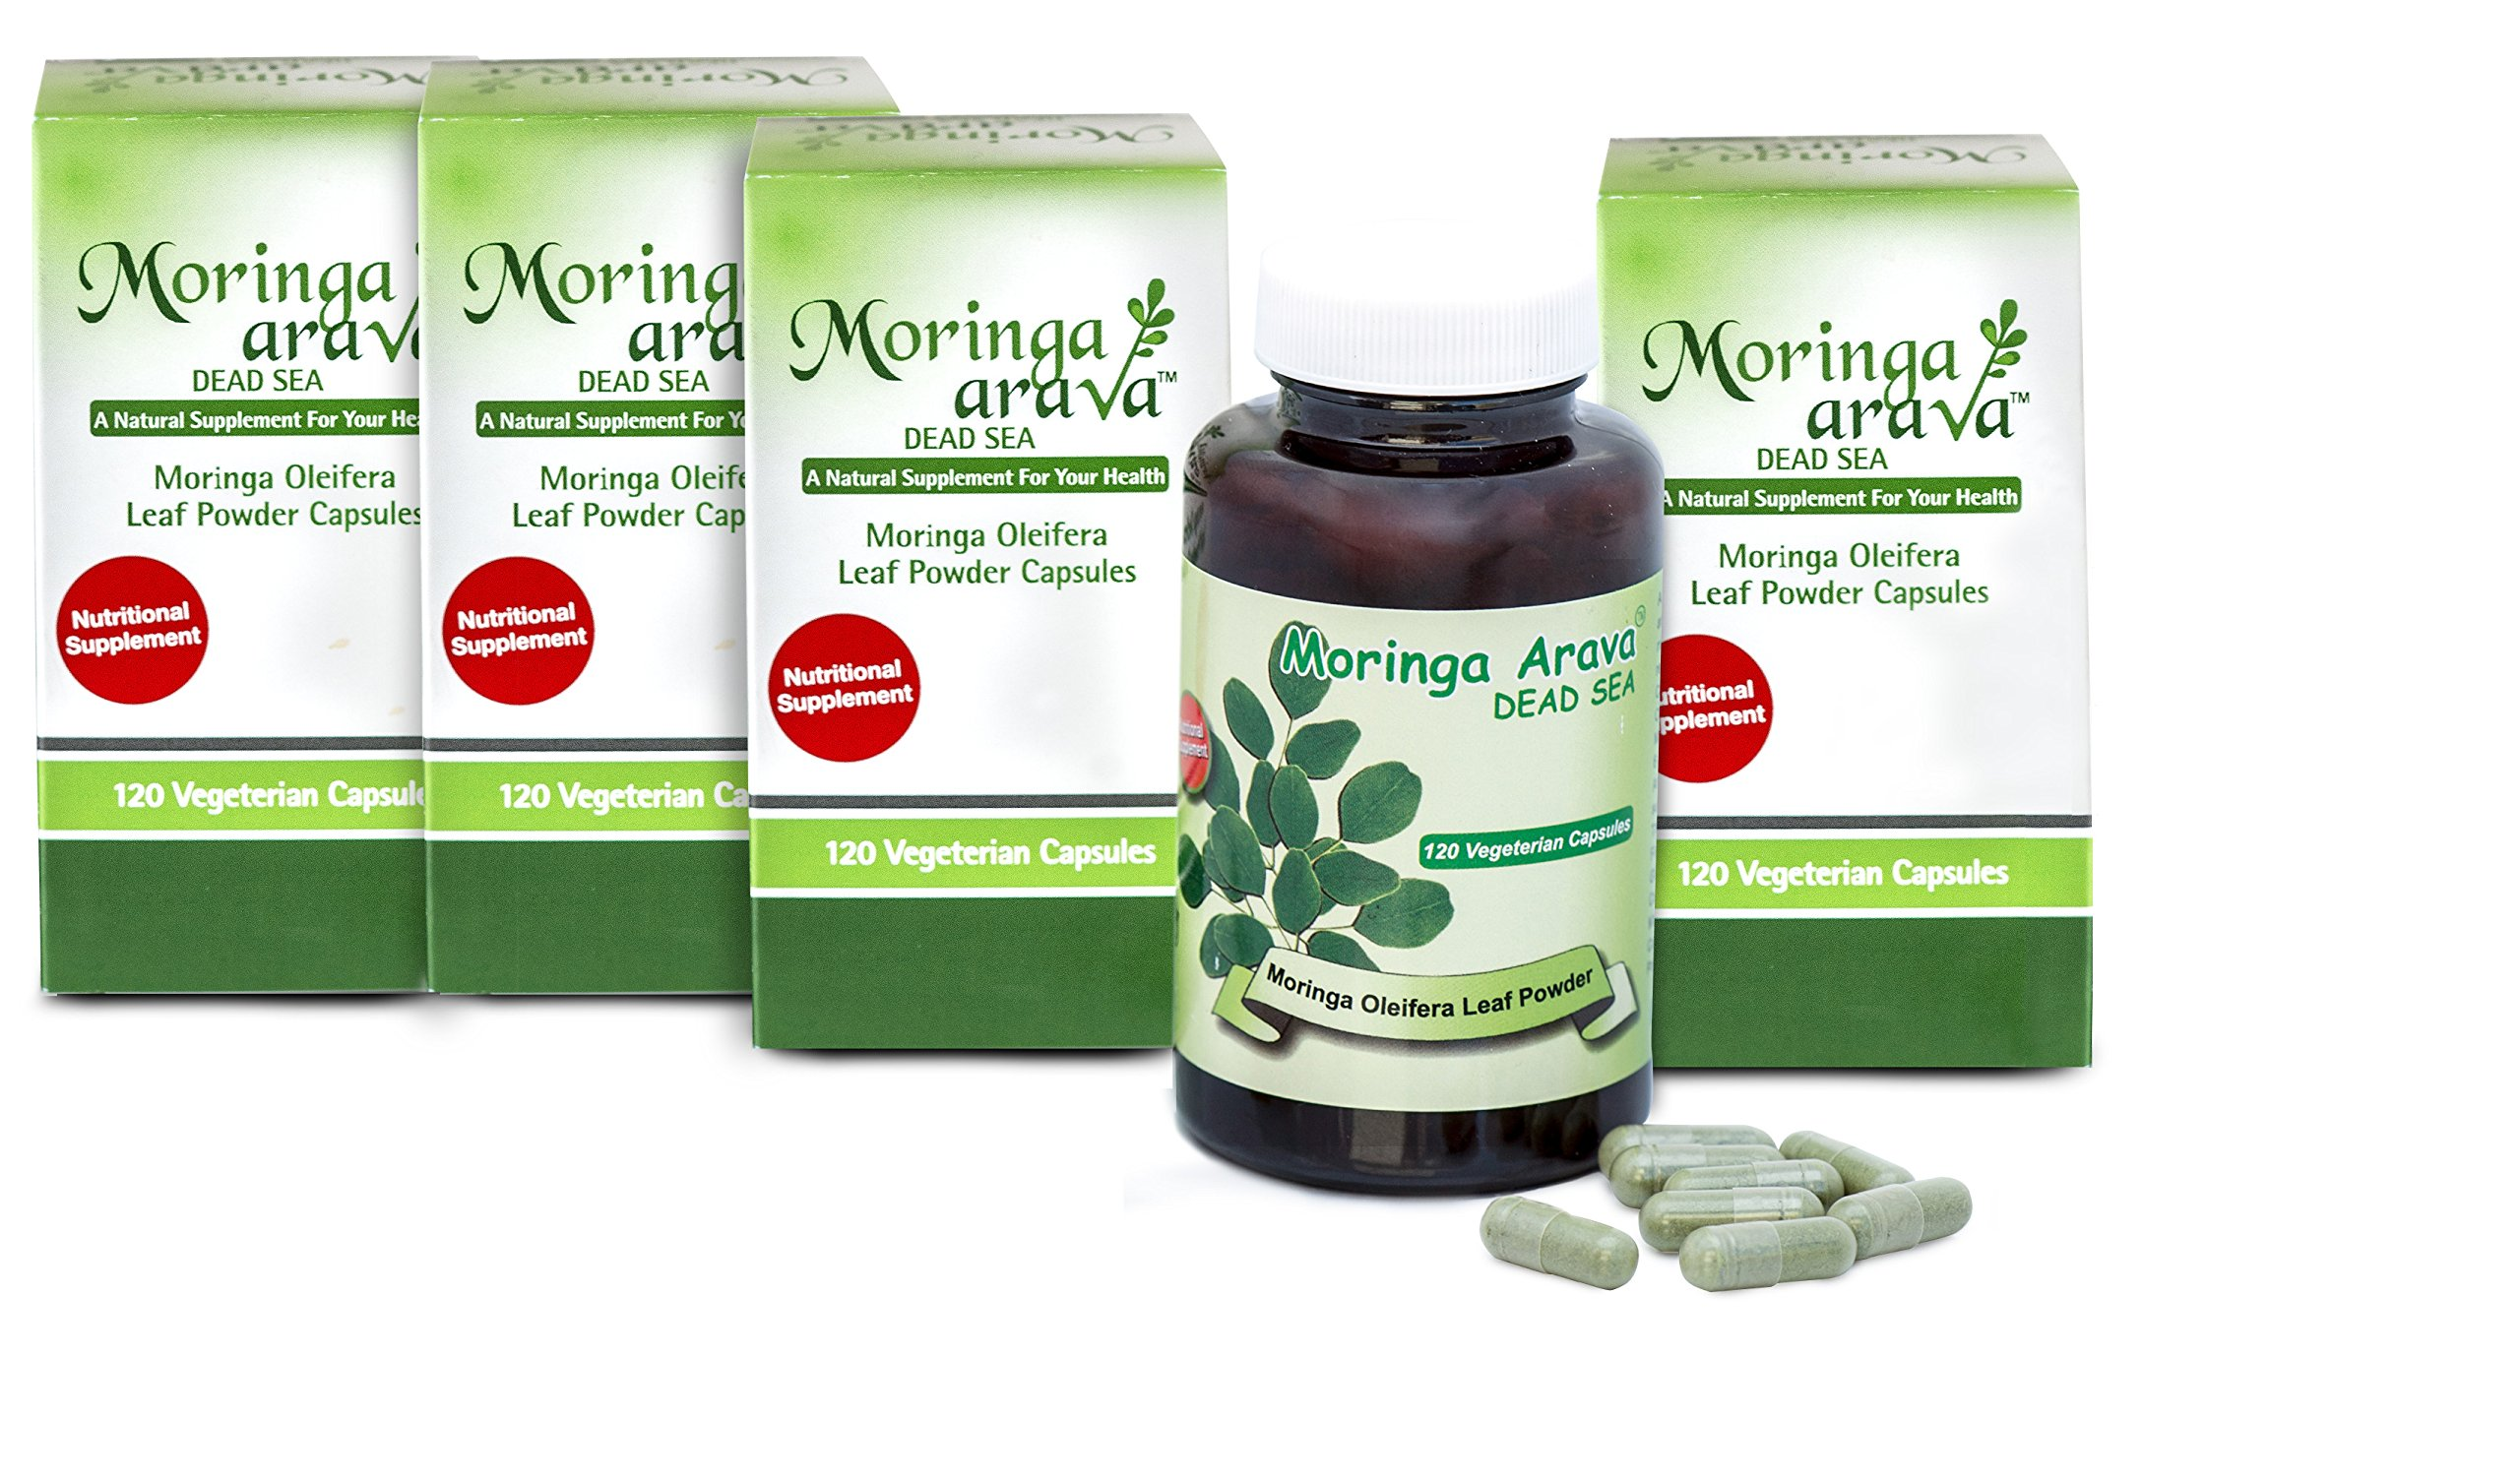 4 Top Moringa Capsules Multivitamin Superfood for Blood Pressure and Lower Cholesterol, Blood Sugar Solution, Thyroid Support, Lactation Supplement, 120 Count for Vegans 310 Mg